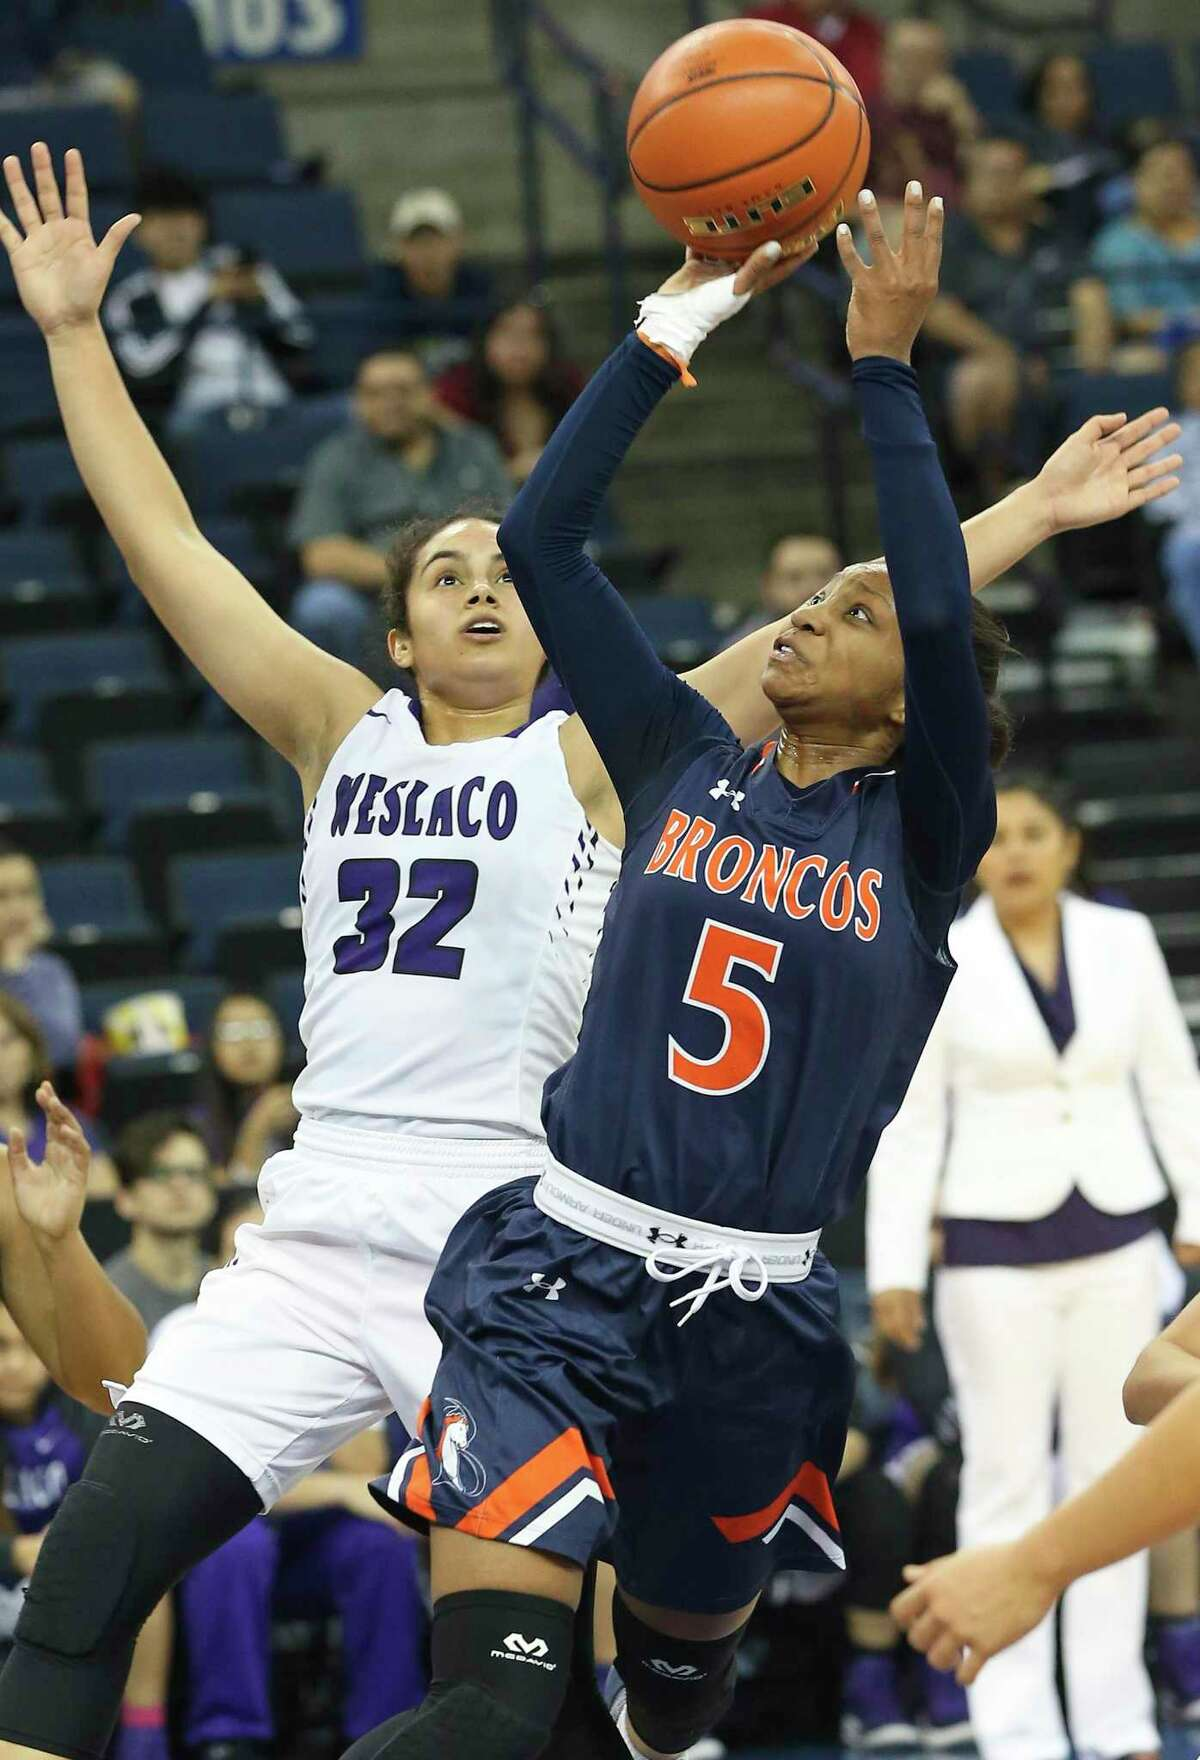 Bronco guard Gabby Connally shoots at the hoop after beating Andrea Villegas as Brandeis plays Weslaco at the Laredo Energy Arena in the Region IV-6A semifinals of girls basketball on February 24, 2017.